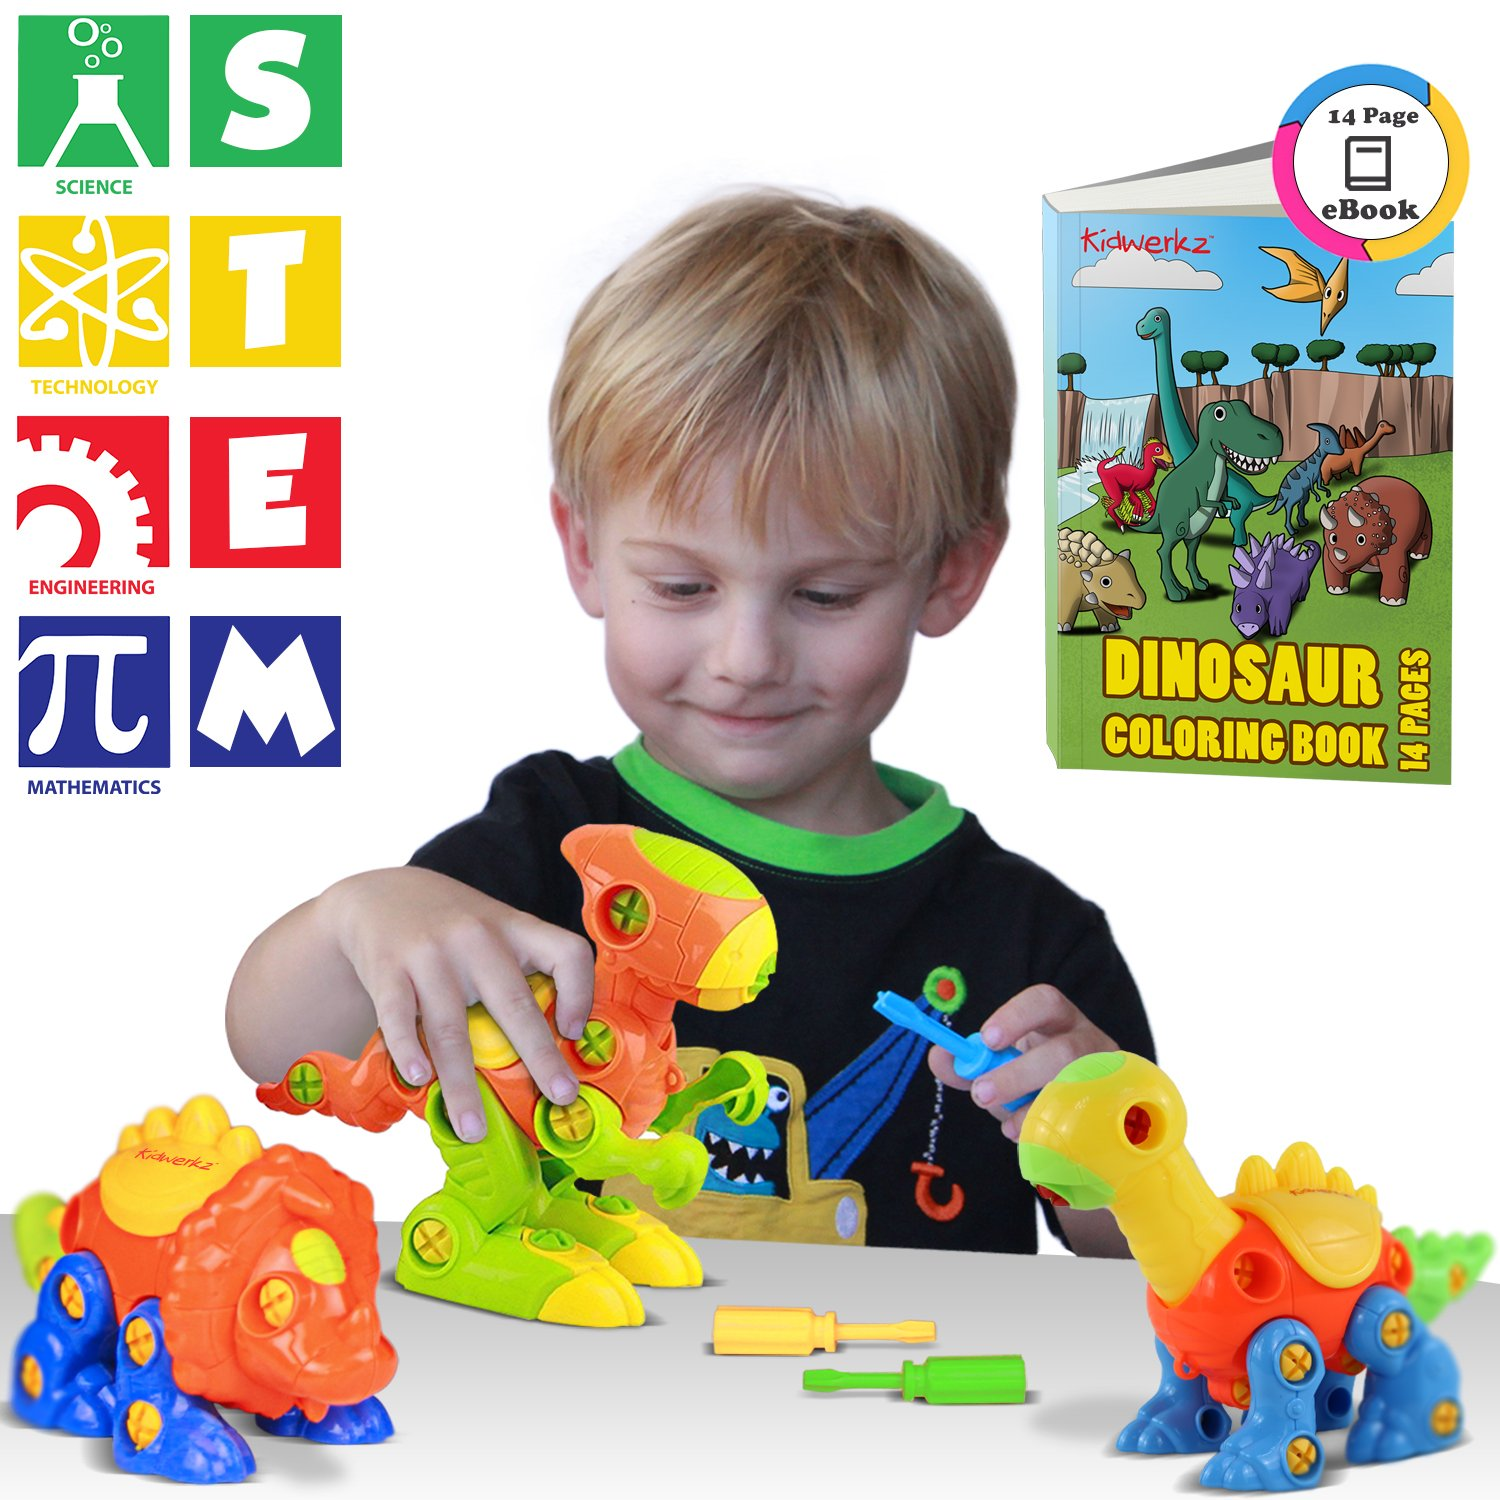 Amazon Kidwerkz Dinosaur Toys STEM Learning 106 pieces